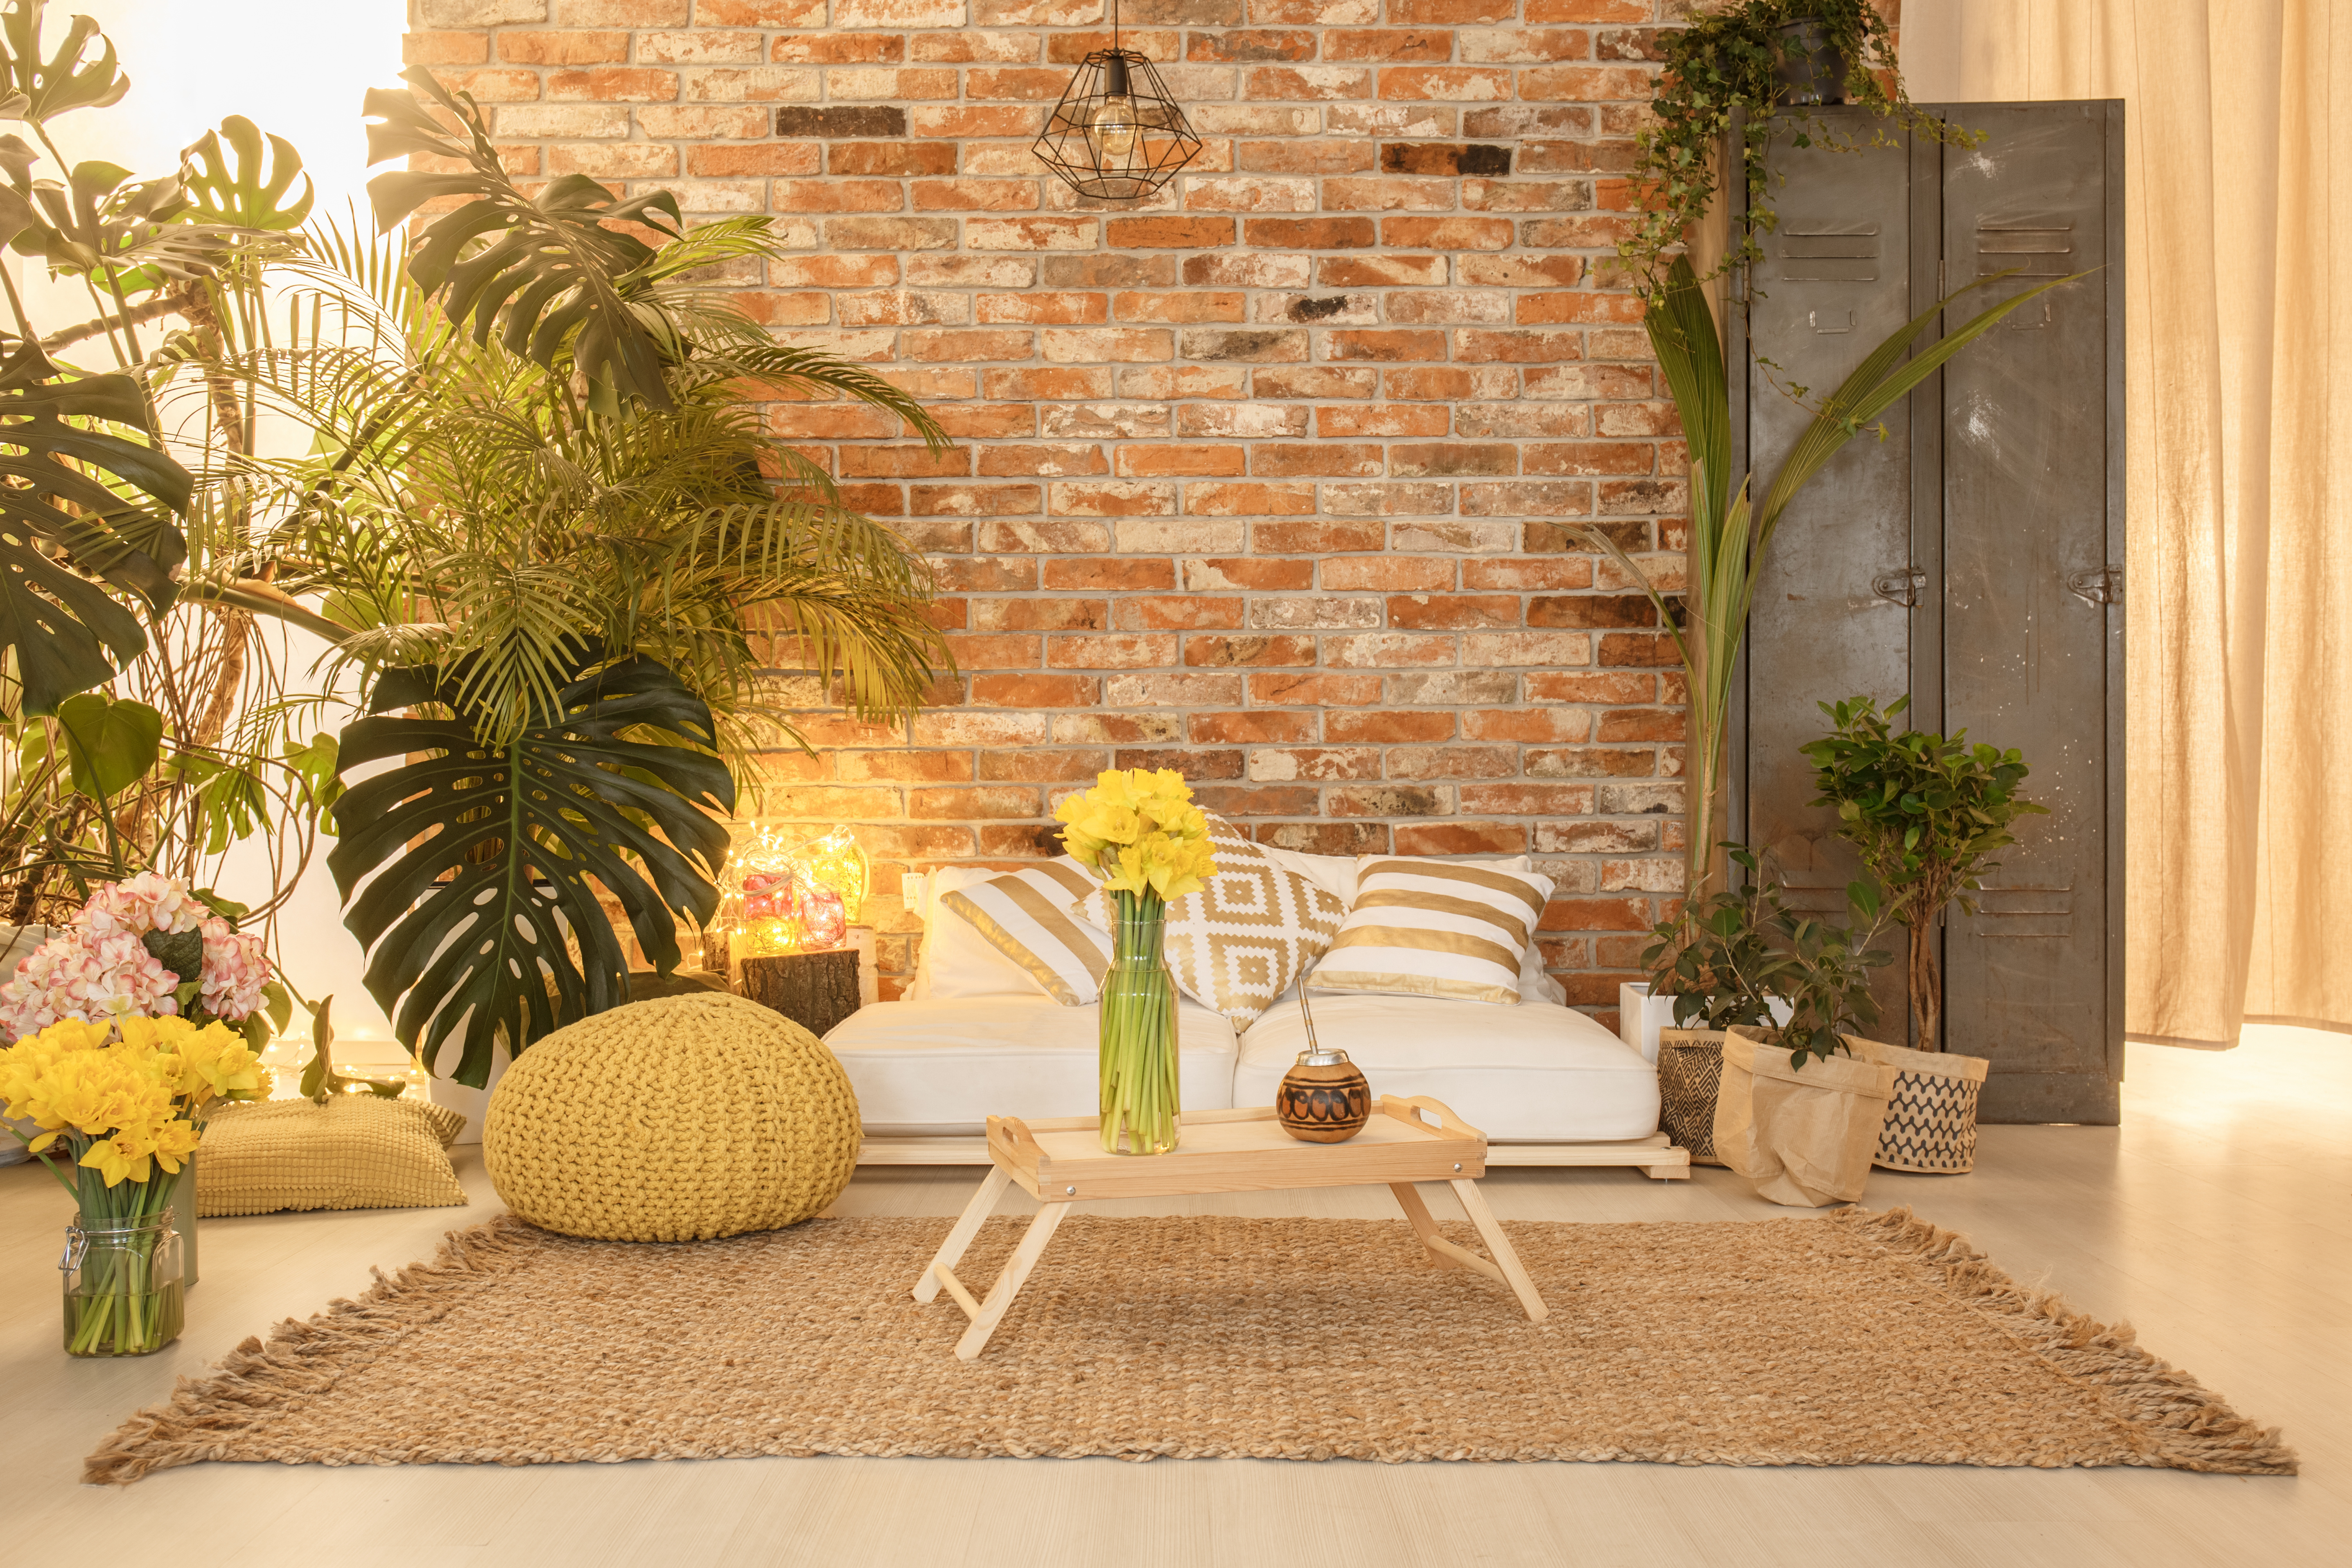 7 WAYS TO MAKE YOUR HOME MORE ZEN